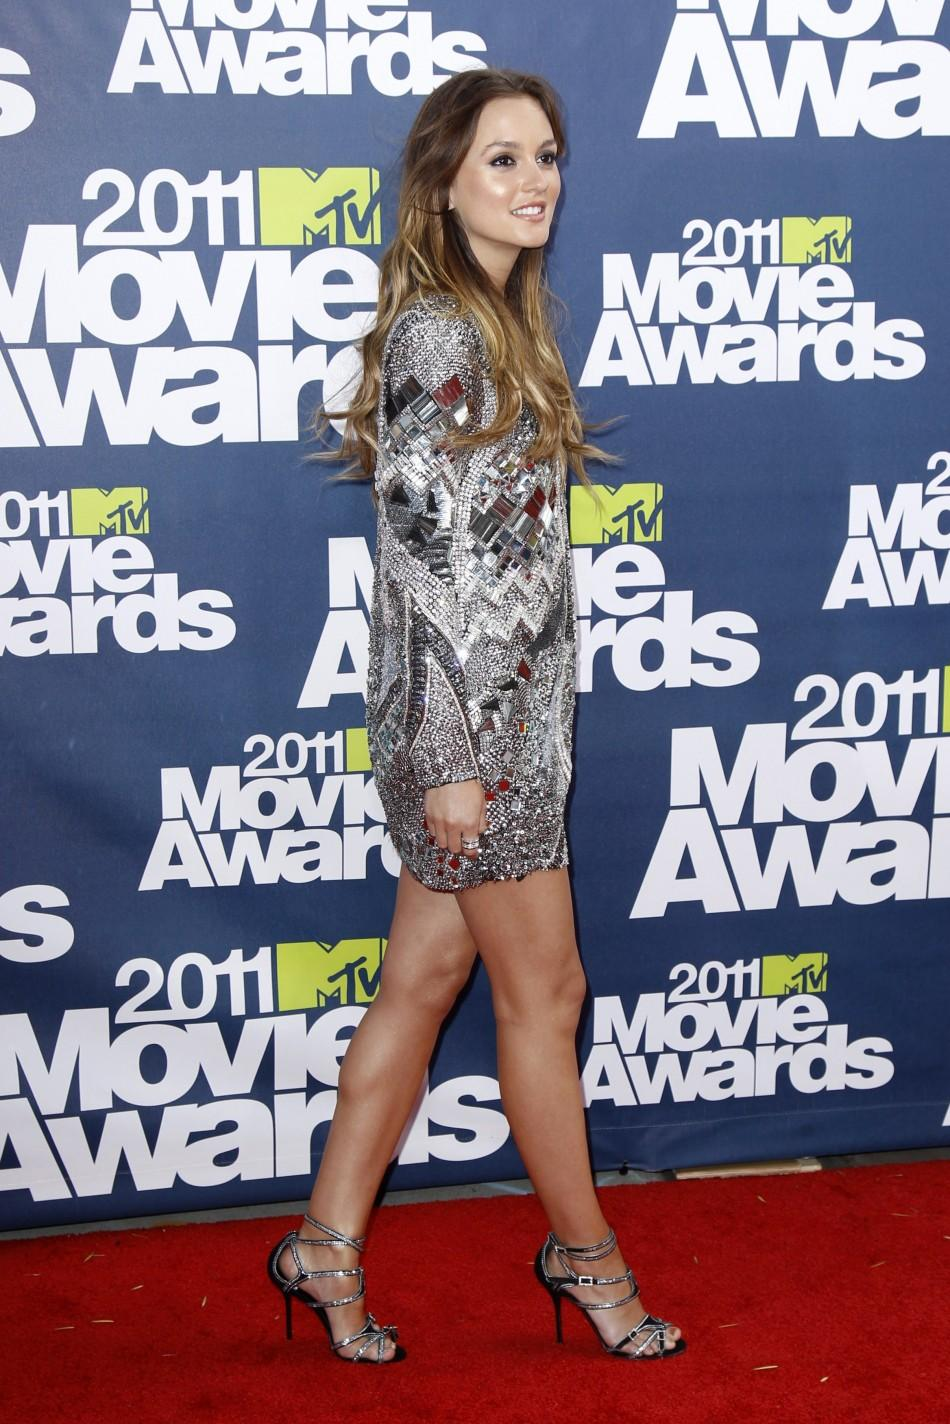 Actress Leighton Meester arrives at the 2011 MTV Movie Awards in Los Angeles, June 5, 2011.